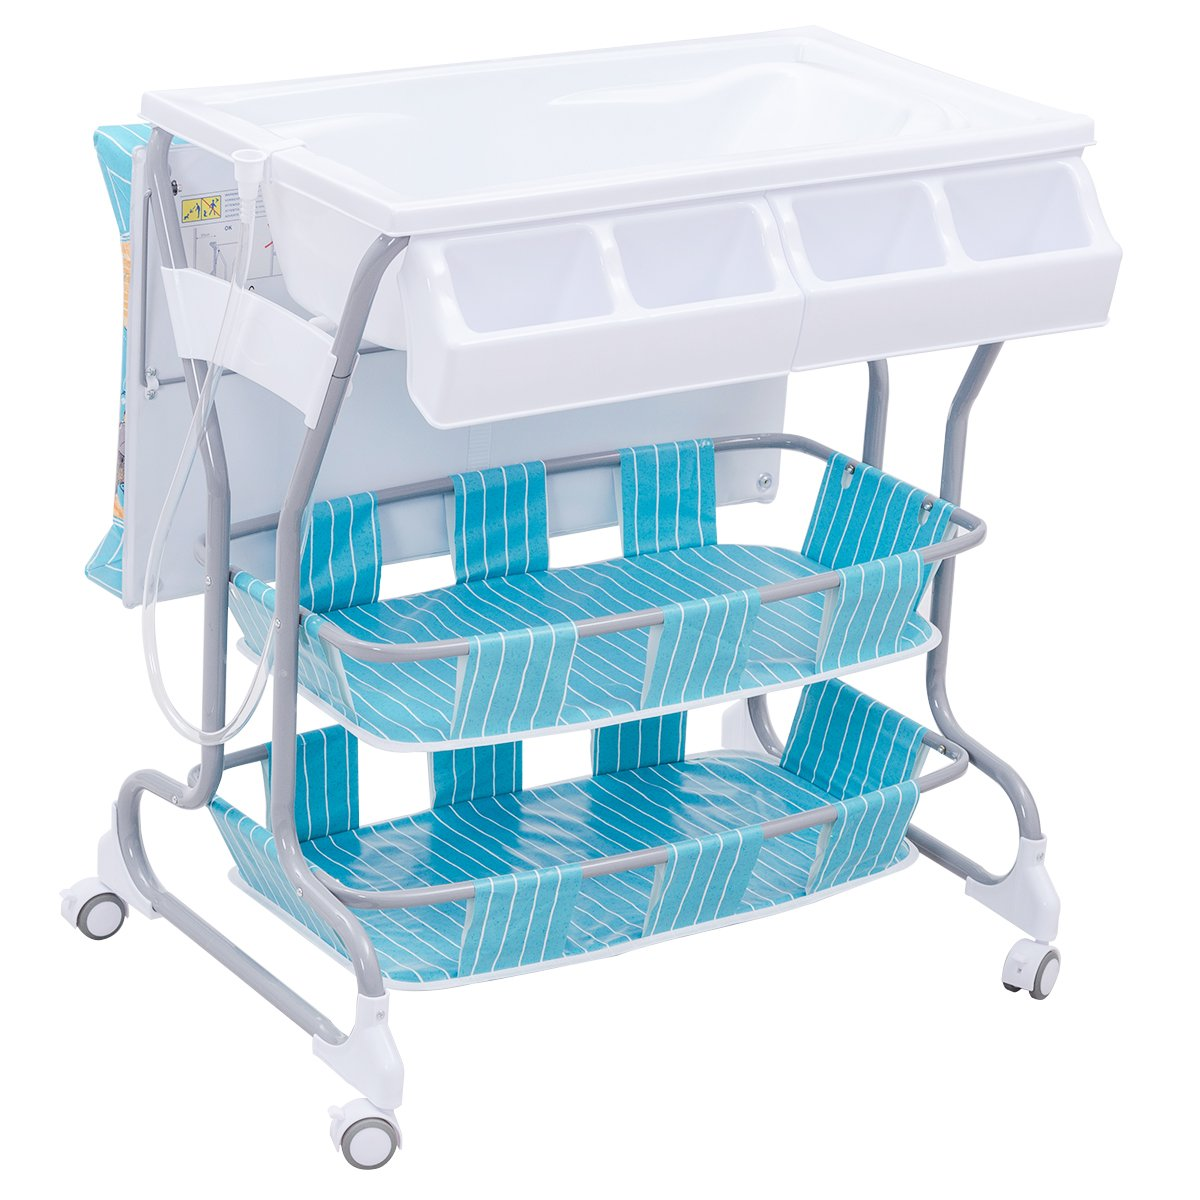 Blue Costway 2 in 1 Infant Changing Table Baby Bath Tub Unit Rolling Station Storage Dresser